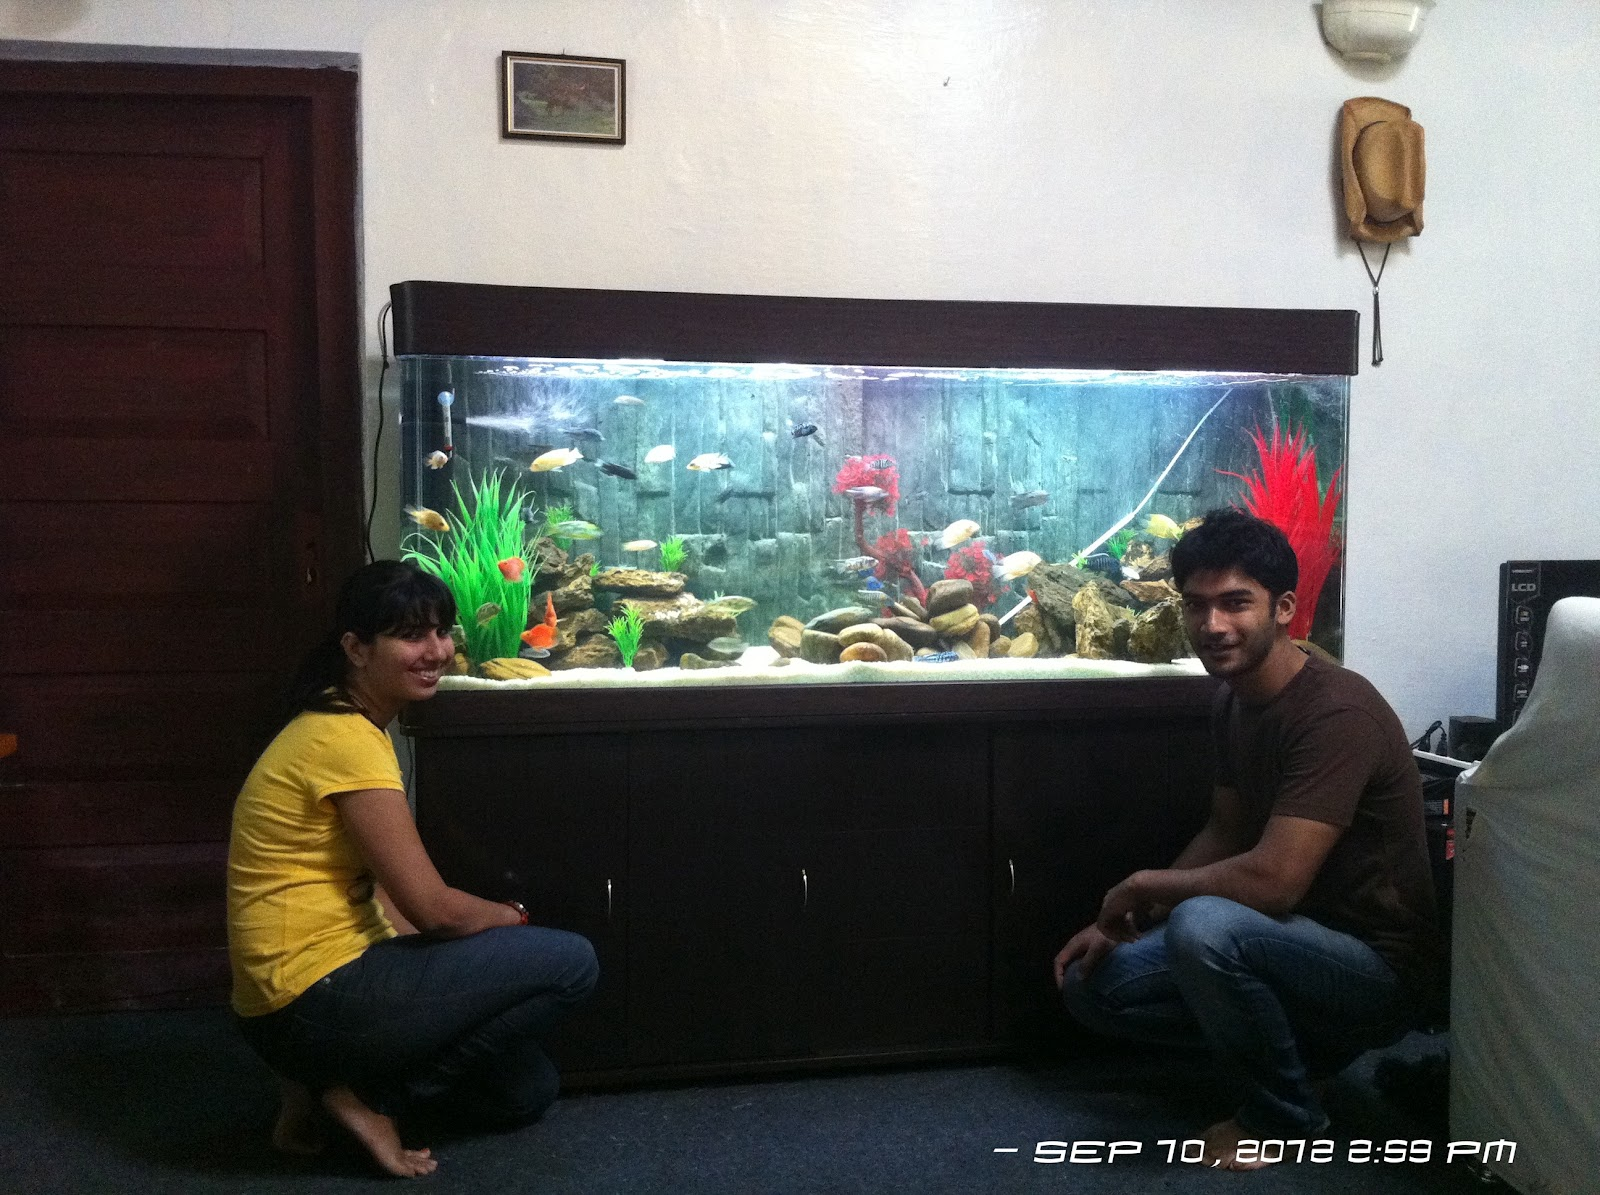 Fish aquarium price in bangalore - 6 Feet African Cichlid Aquarium Setup